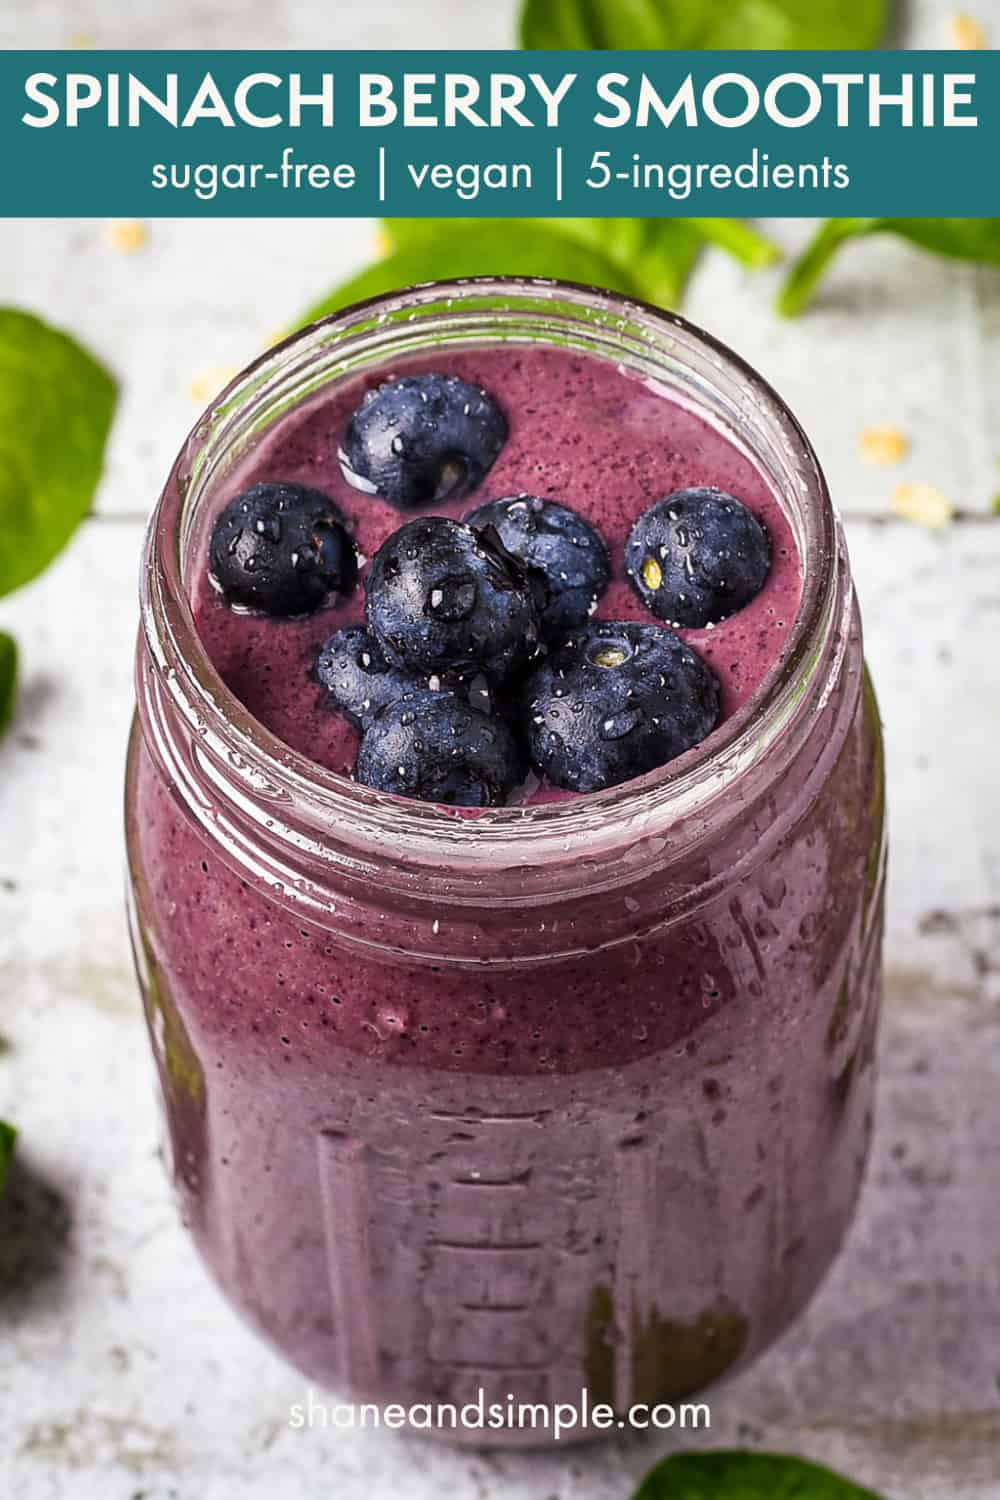 Start your day with this delicious Spinach Berry Smoothie! Packed full of vitamins and antioxidants, this smoothie recipe is easy, creamy, smooth, and you'll never taste the spinach. Vegan and dairy-free!